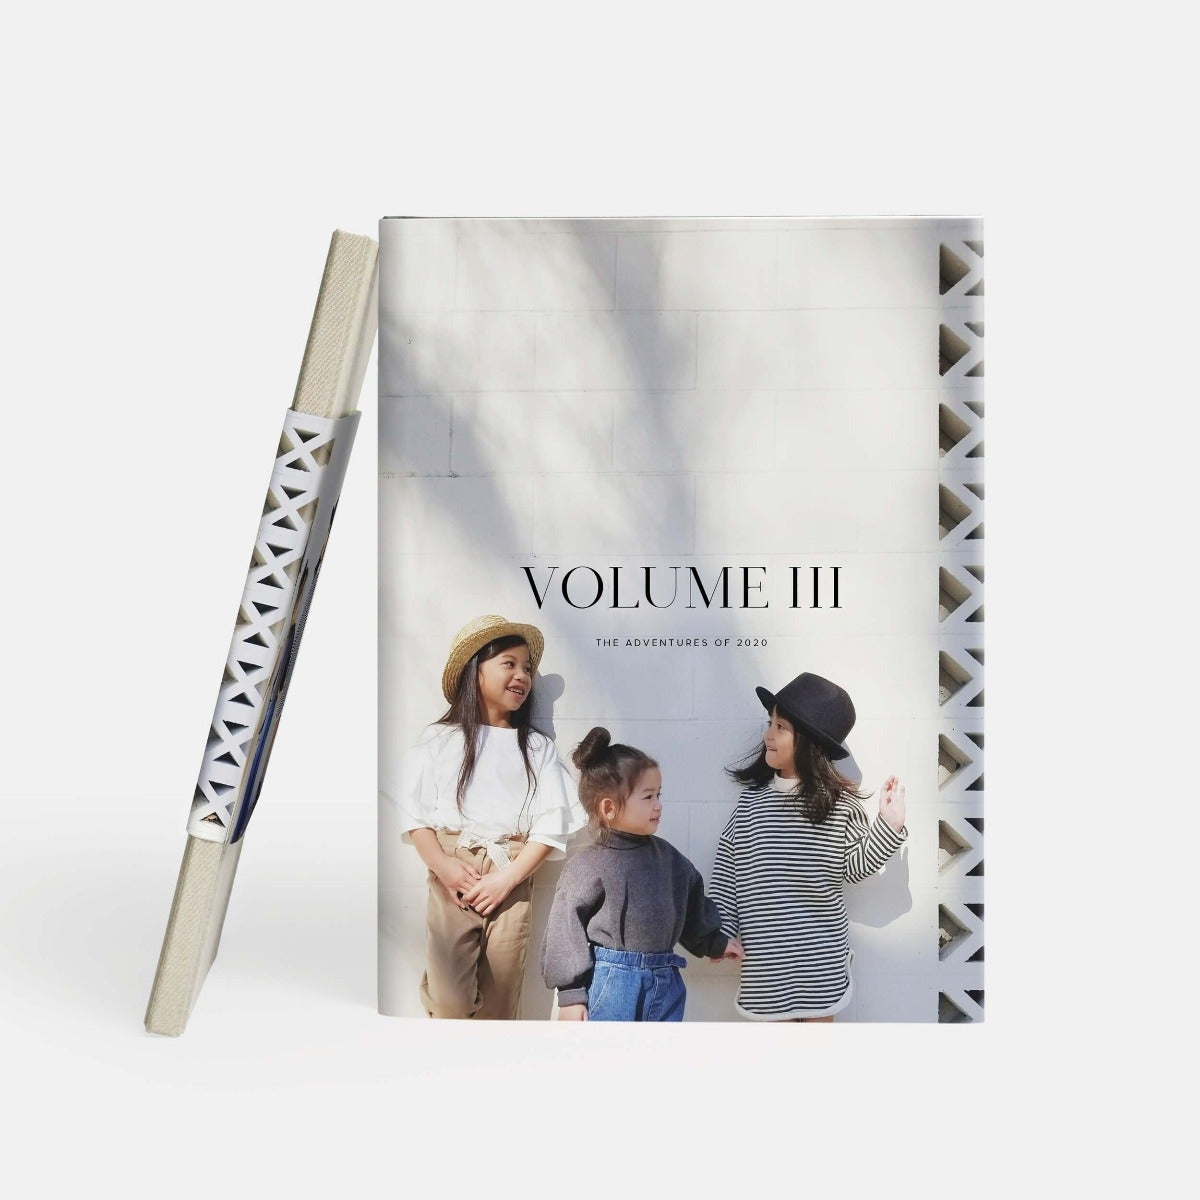 Hardcover Annual Photo Book